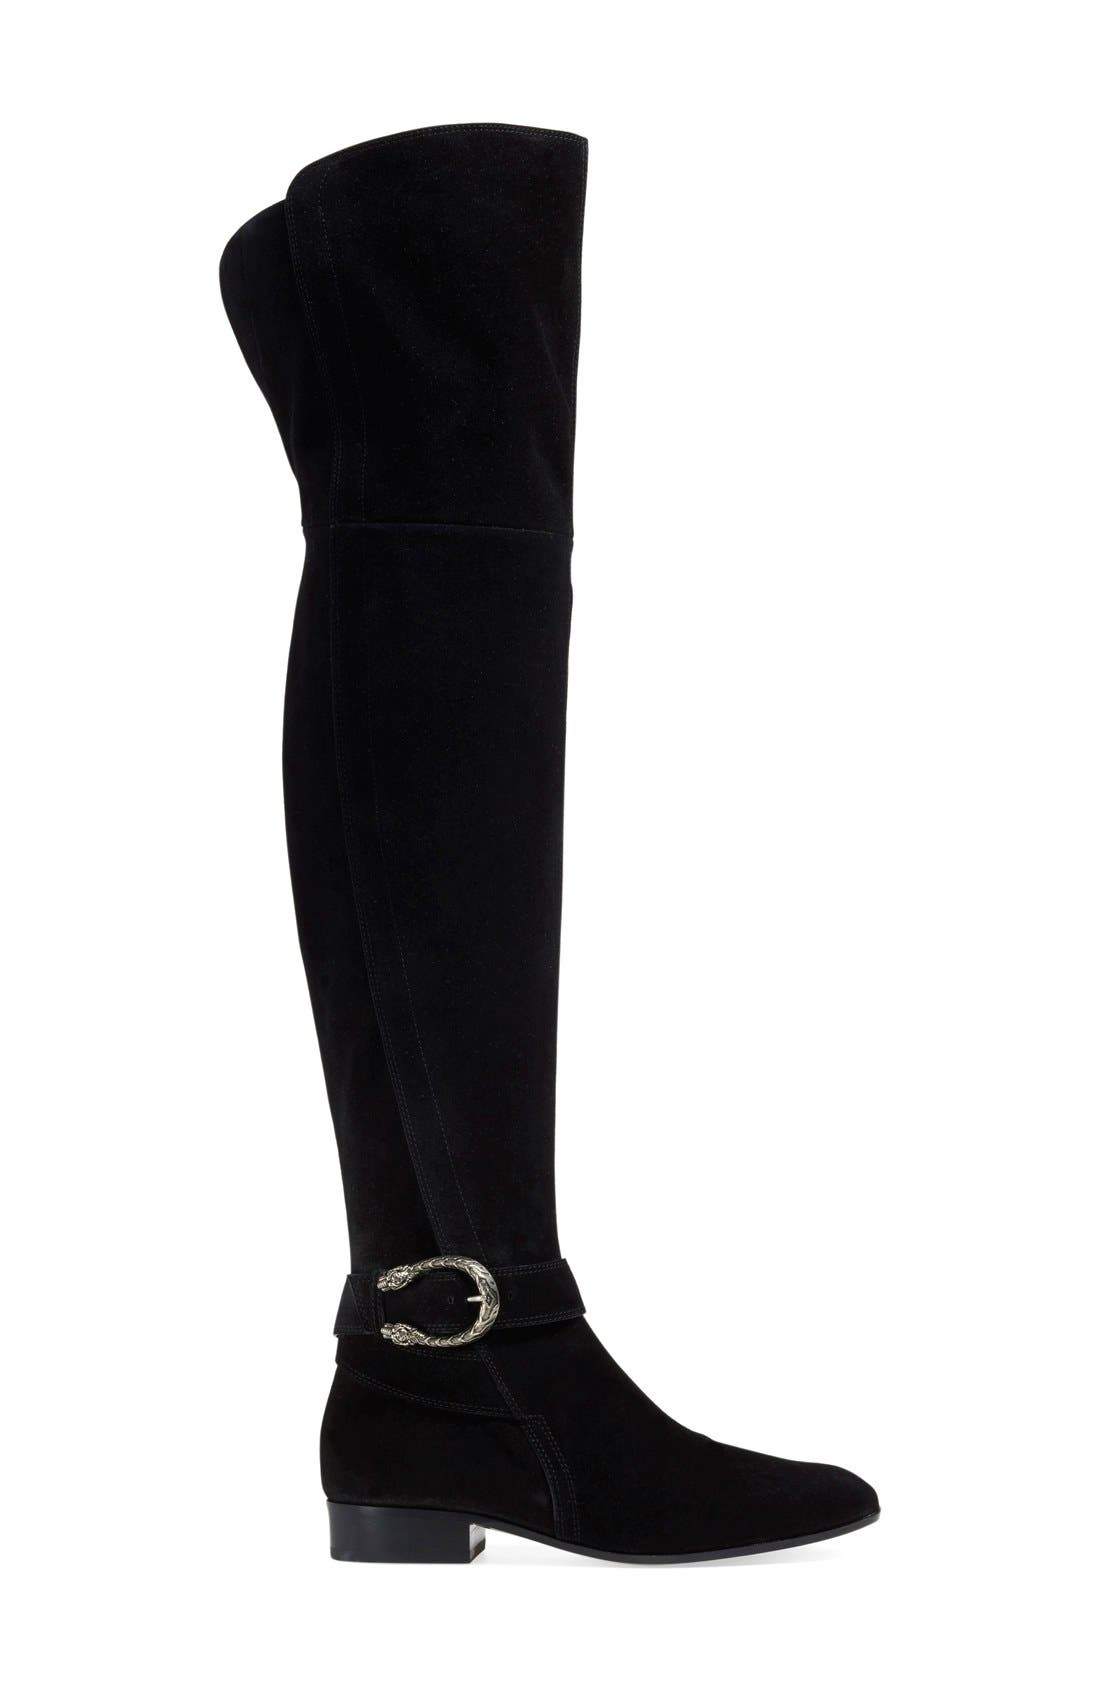 'Dionysus' Over the Knee Boot,                             Alternate thumbnail 2, color,                             001